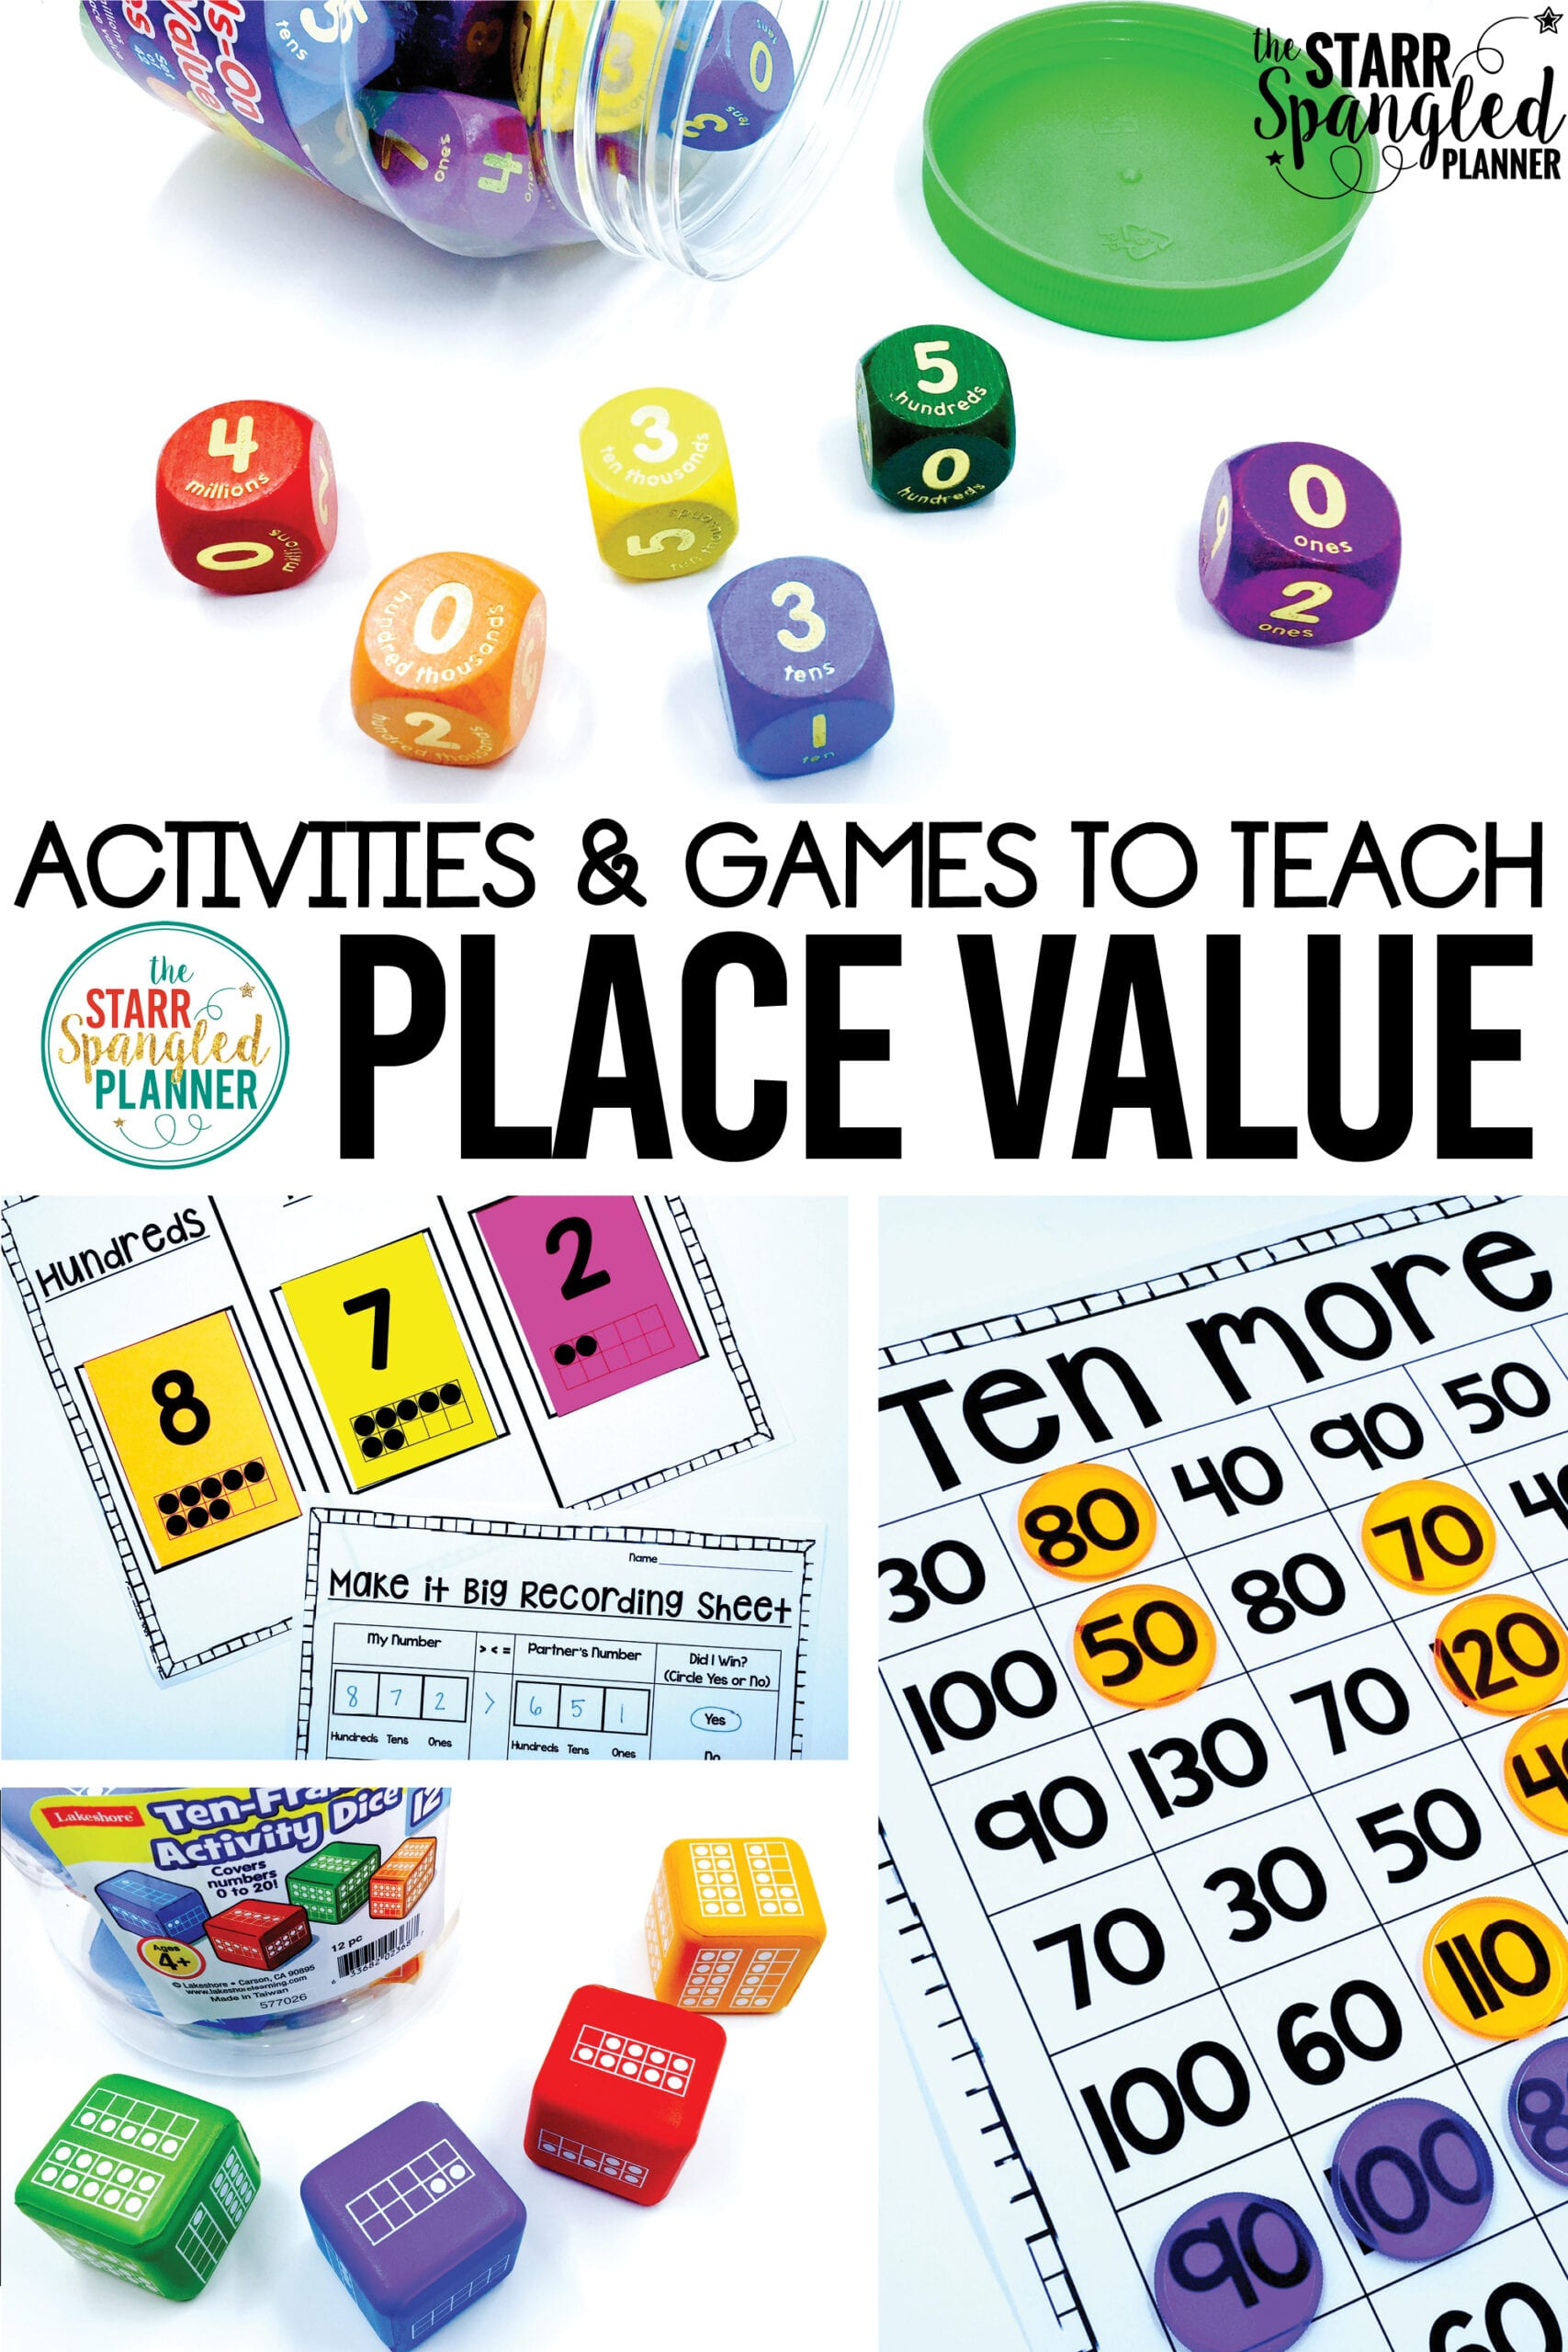 graphic relating to Place Value Games Printable named Training Point Significance - Education with Jillian Starr